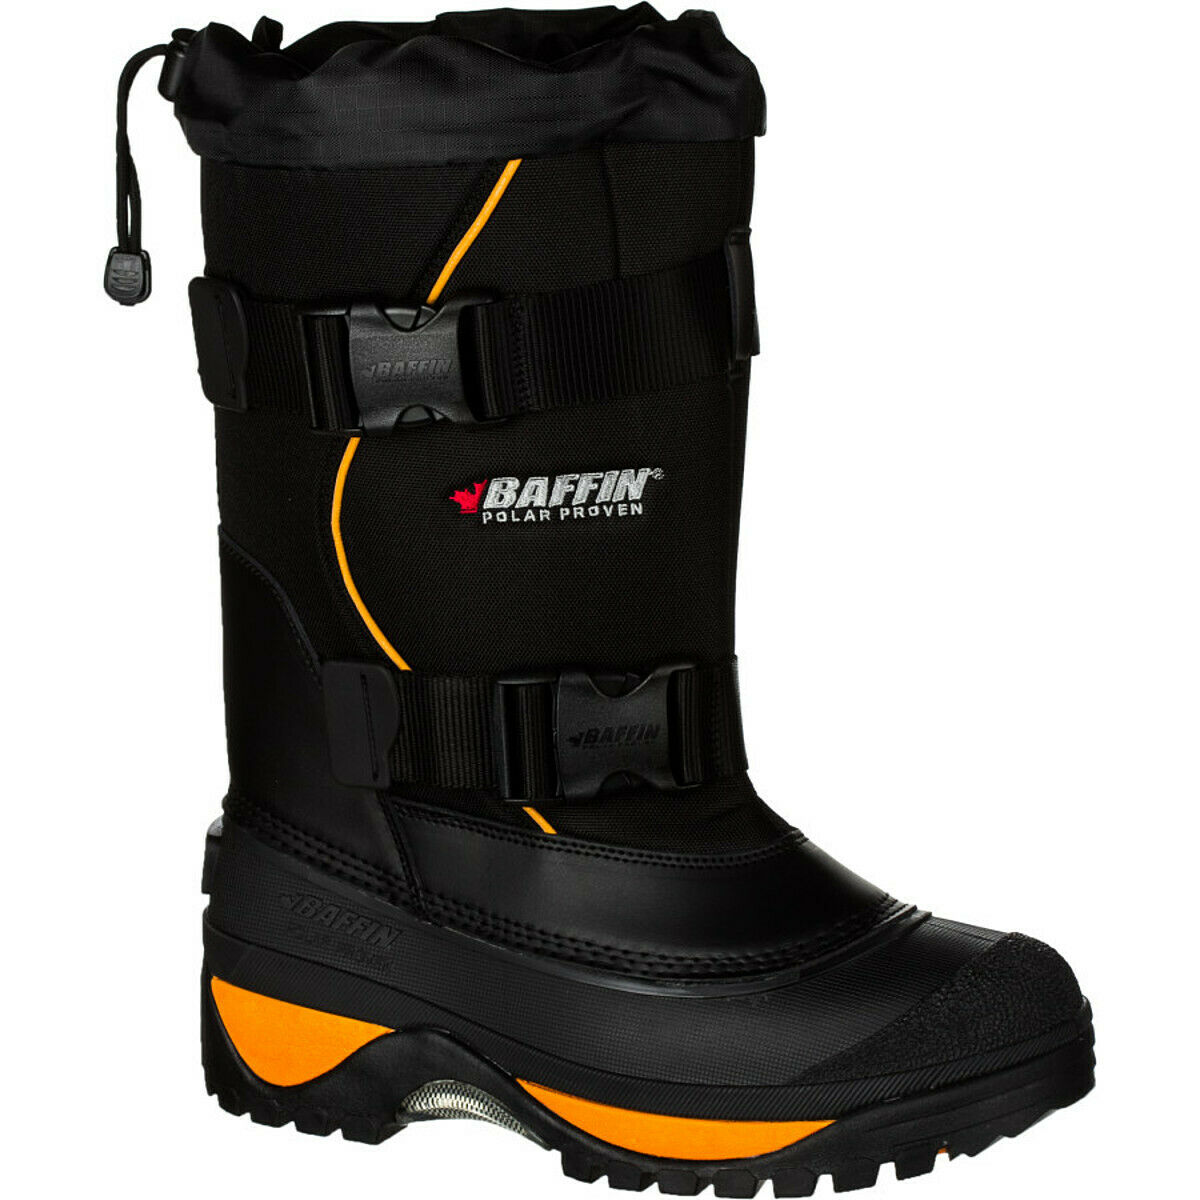 Baffin Wolf Winter Boot - Men's Black/Expedition Gold 7.0